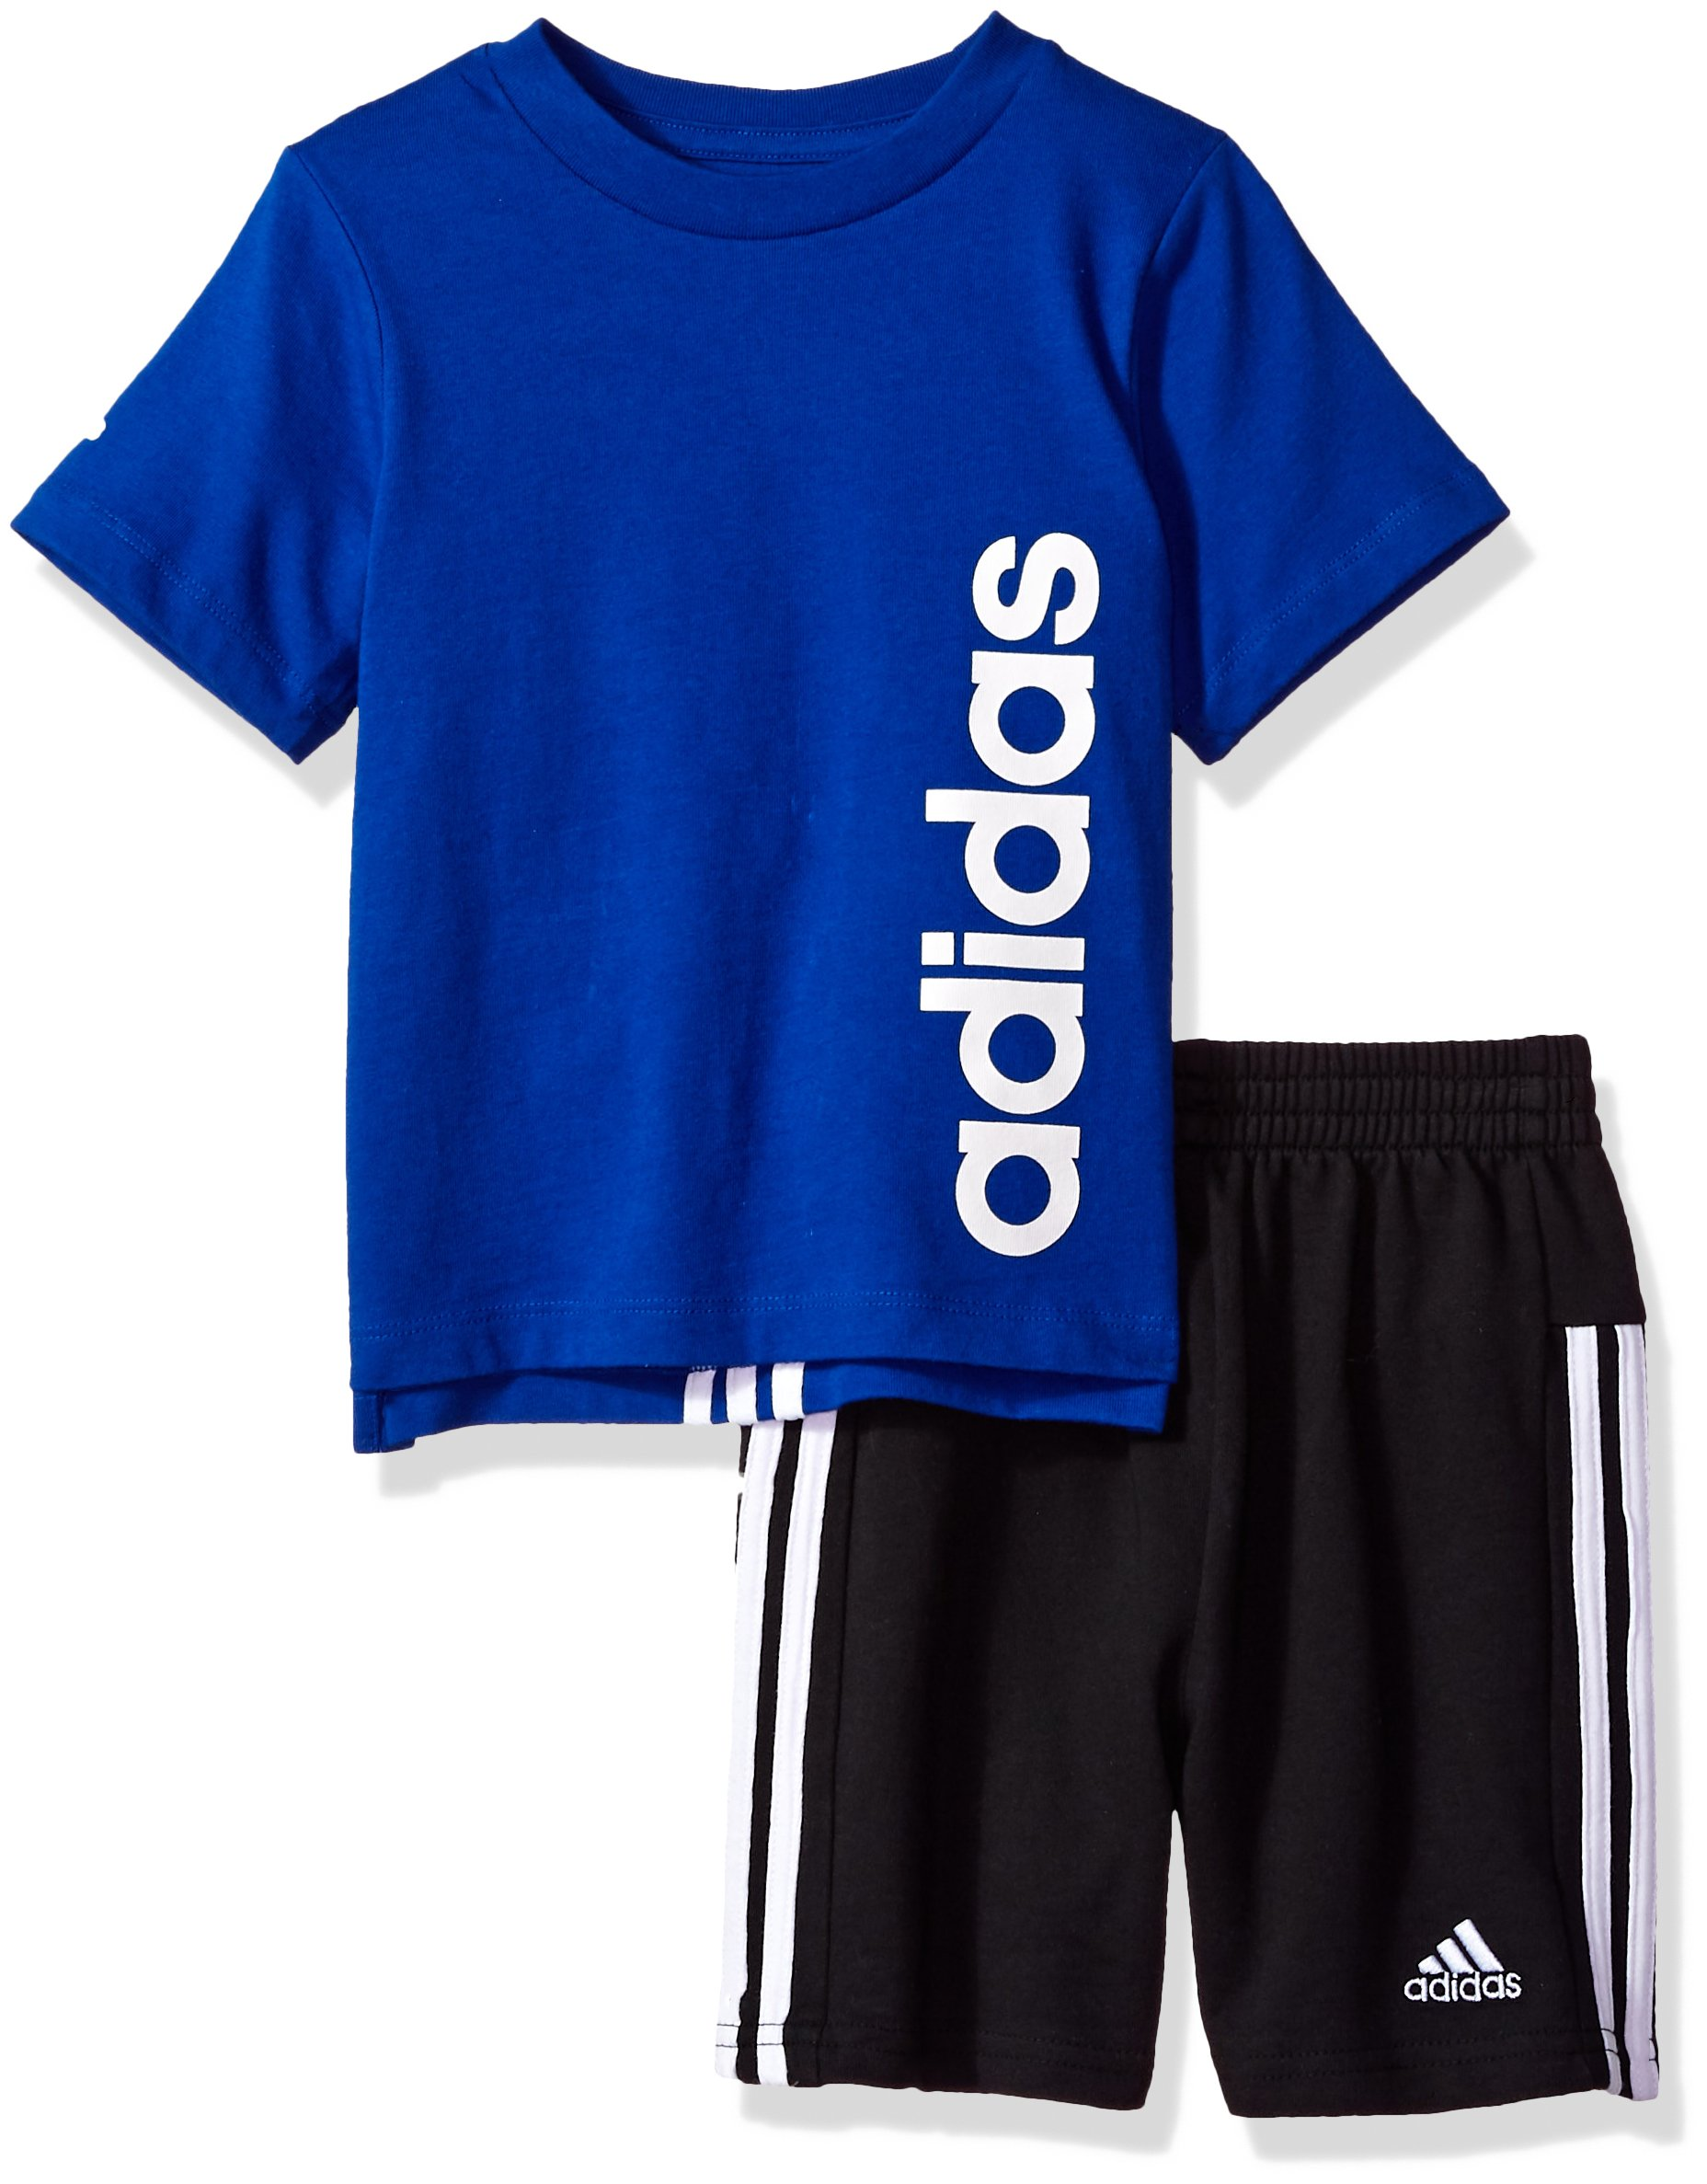 adidas Baby Boys Short Sleeve Tee and Short Set, Collegiate Royal, 18M by adidas (Image #1)